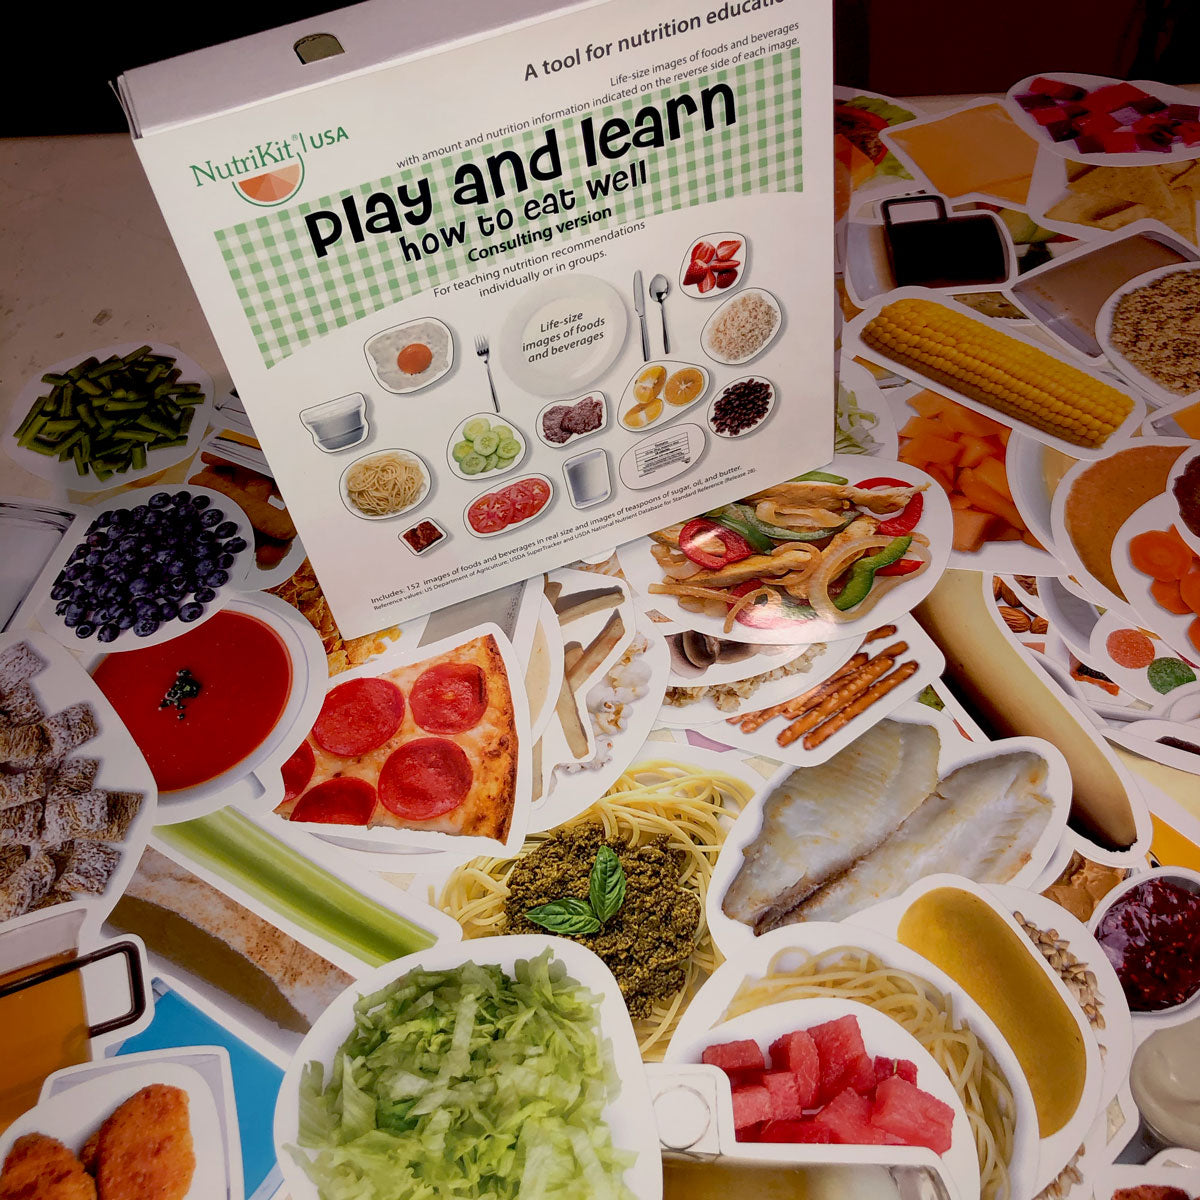 NutriKit Play and learn how to eat well -Consulting version– - NutriKit Réplicas de alimentos